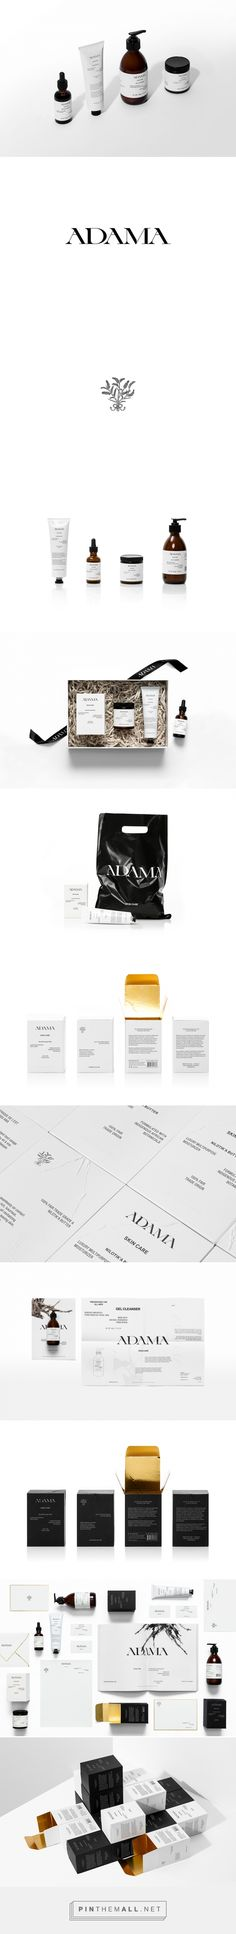 Adama skincare packaging design by Anagrama (Mexico) - http://www.packagingoftheworld.com/2016/09/adama.html